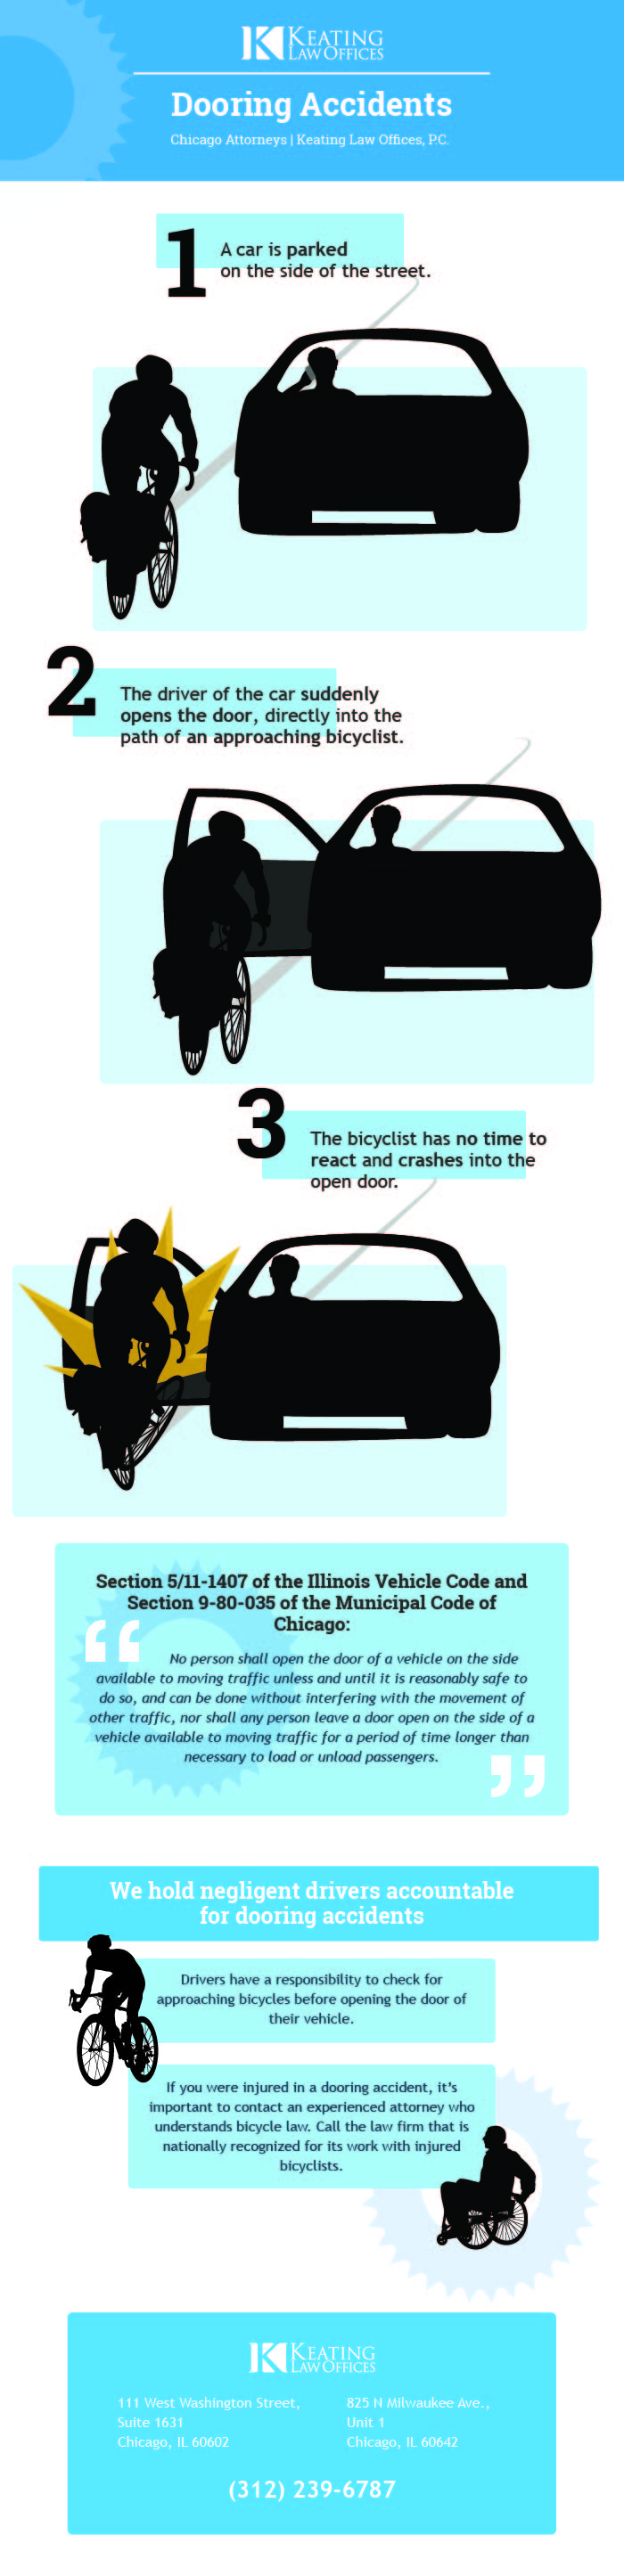 Dooring Accident Infographic